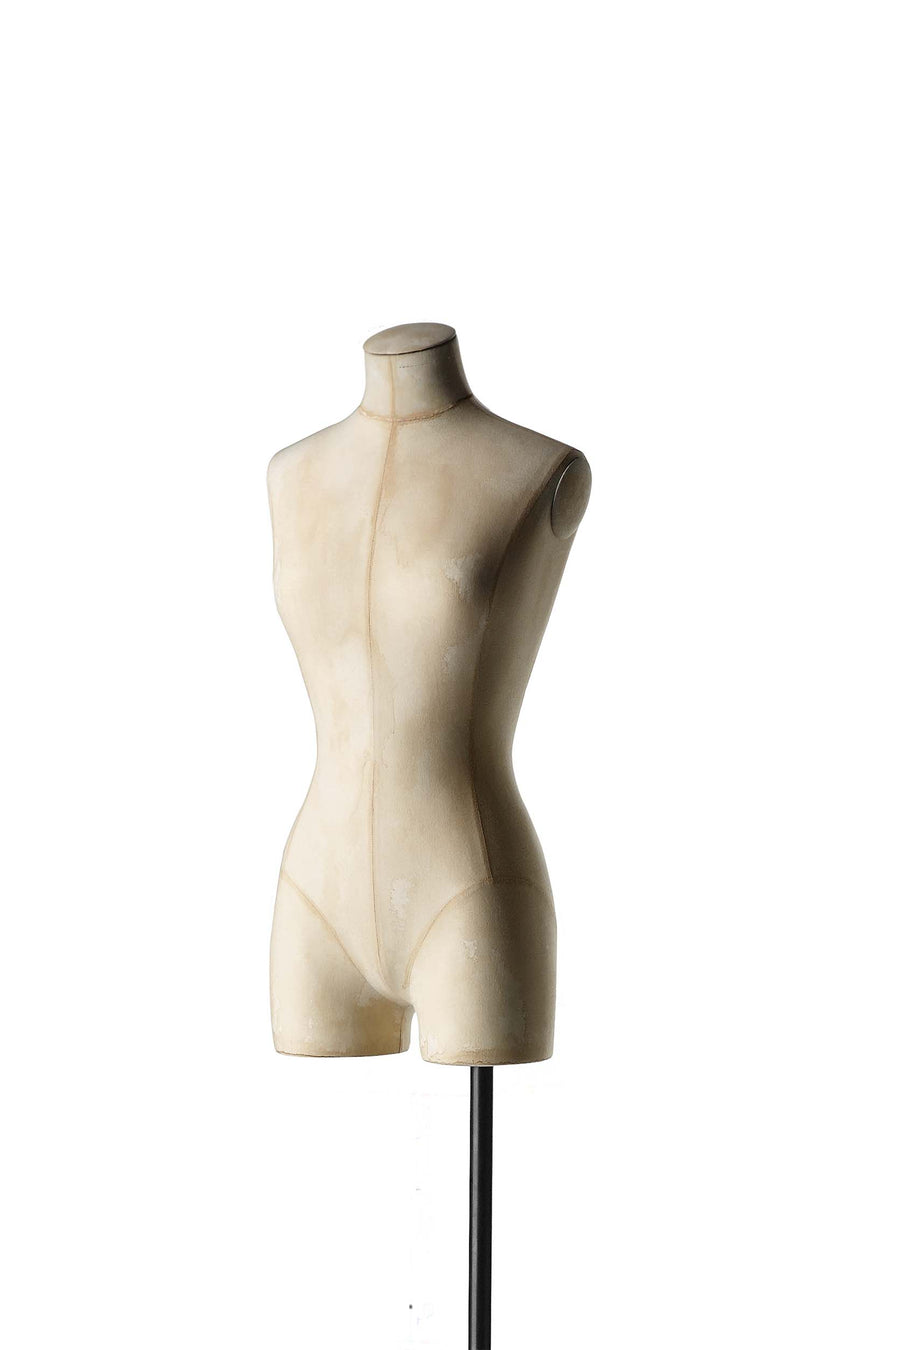 beige burlap covered female three quarter tailor bust form with no head, arms, or legs